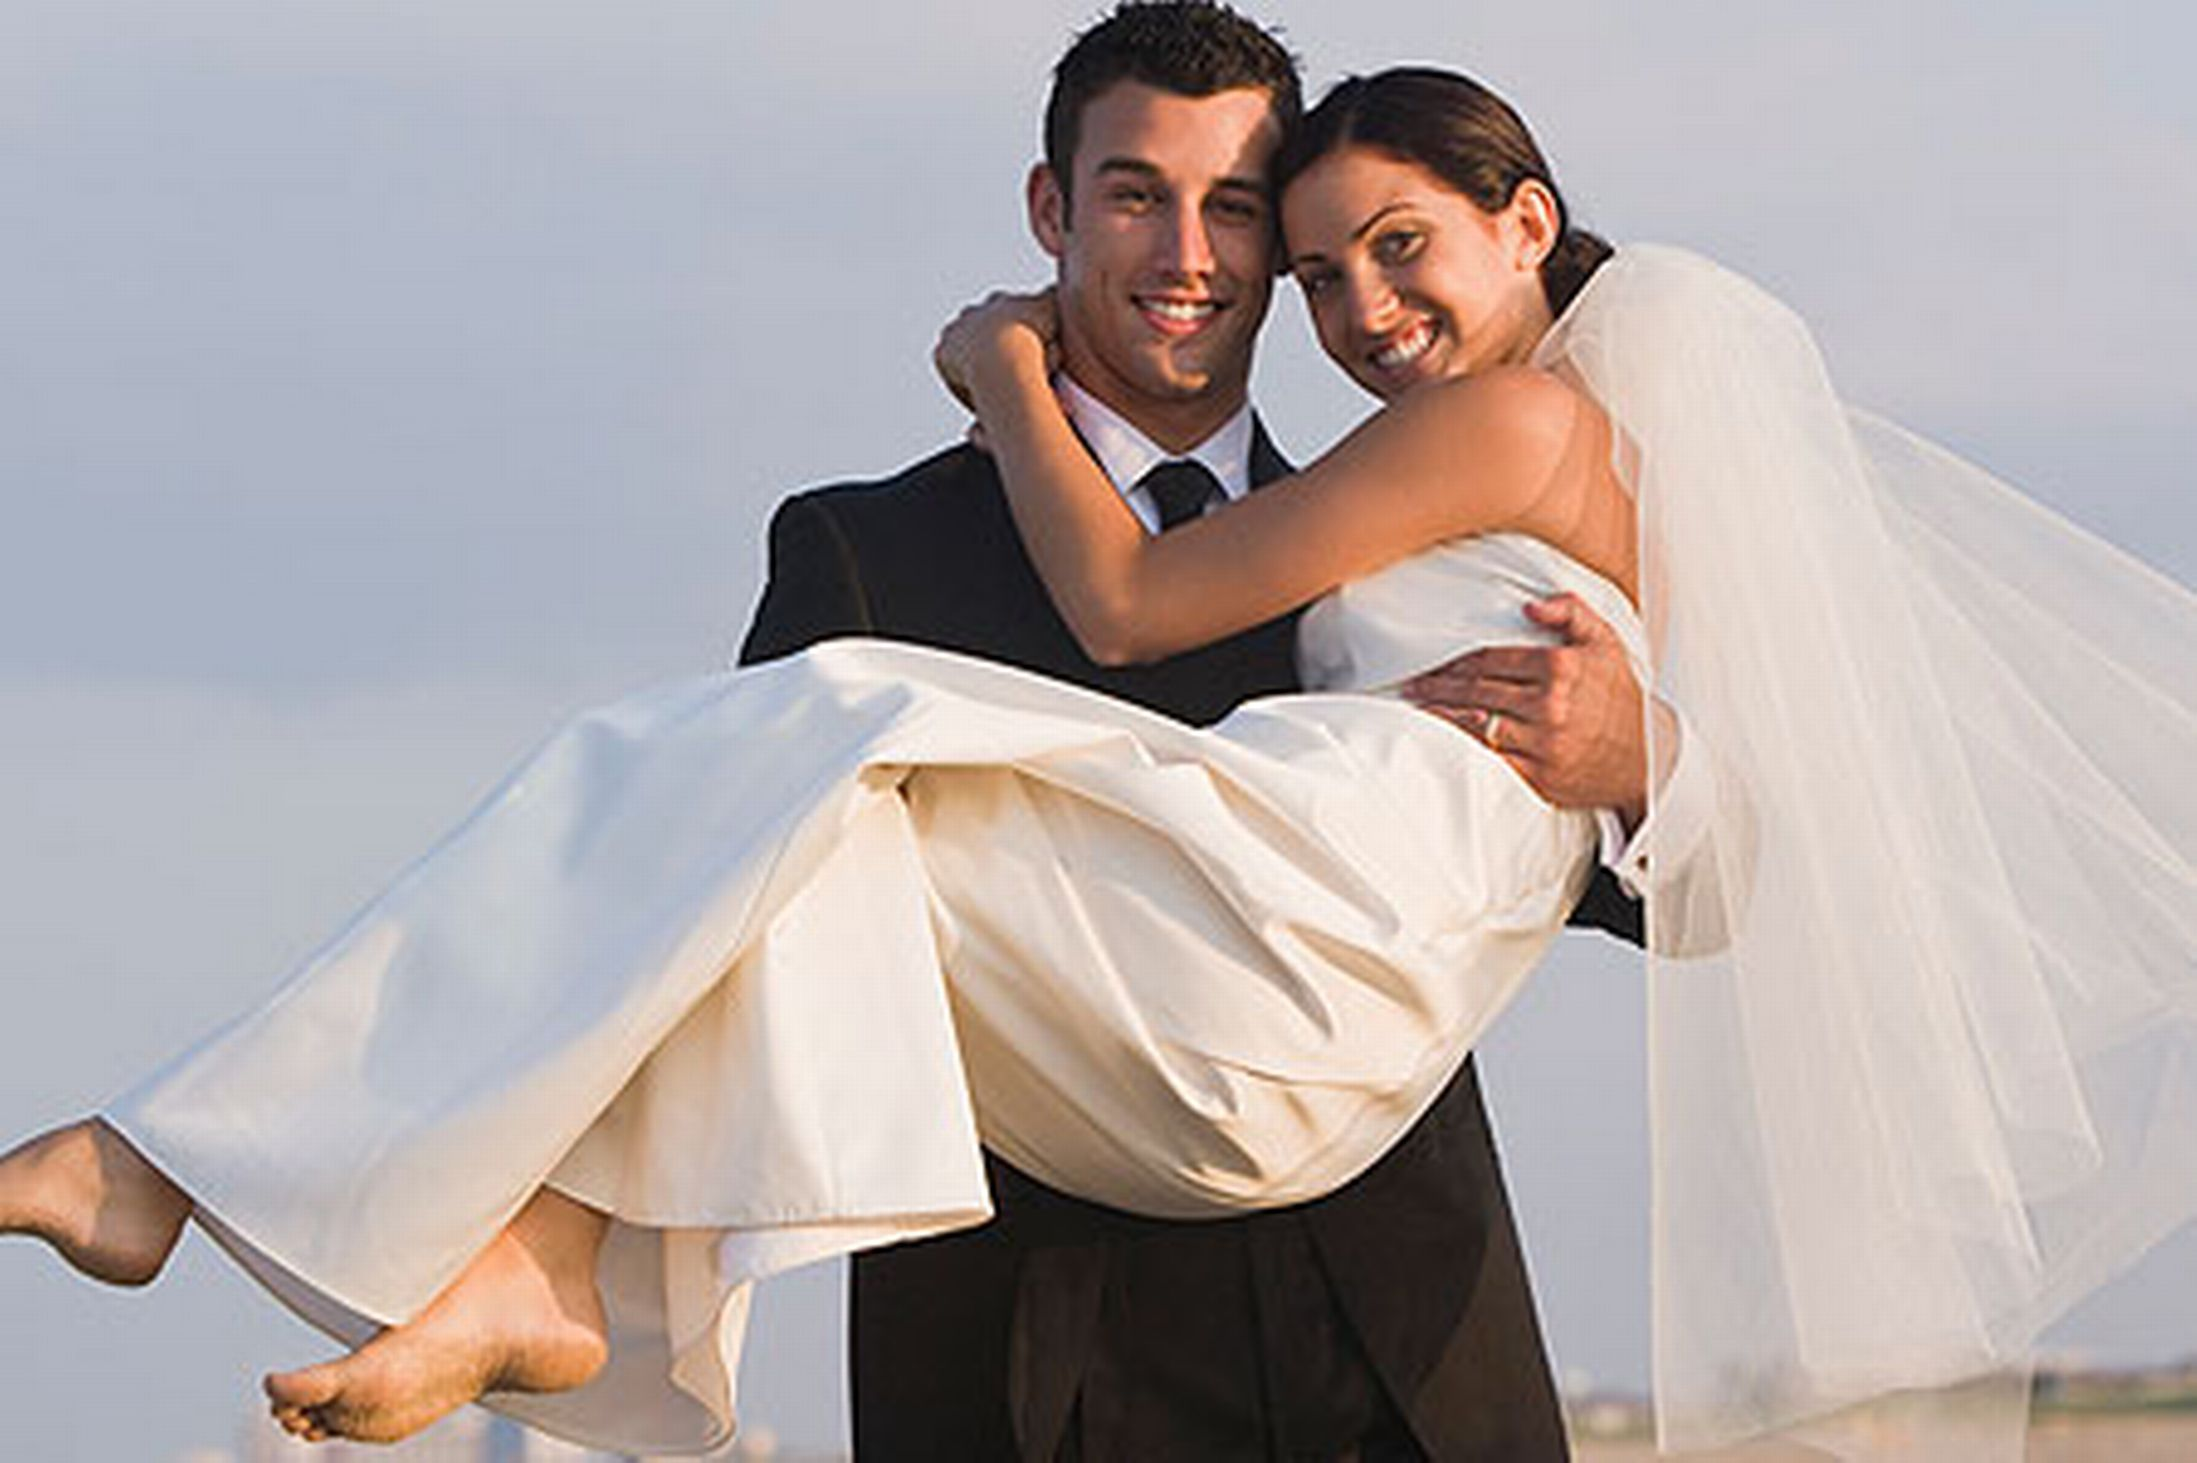 happy-newlyweds-at-beach-pic-getty-images-157588537